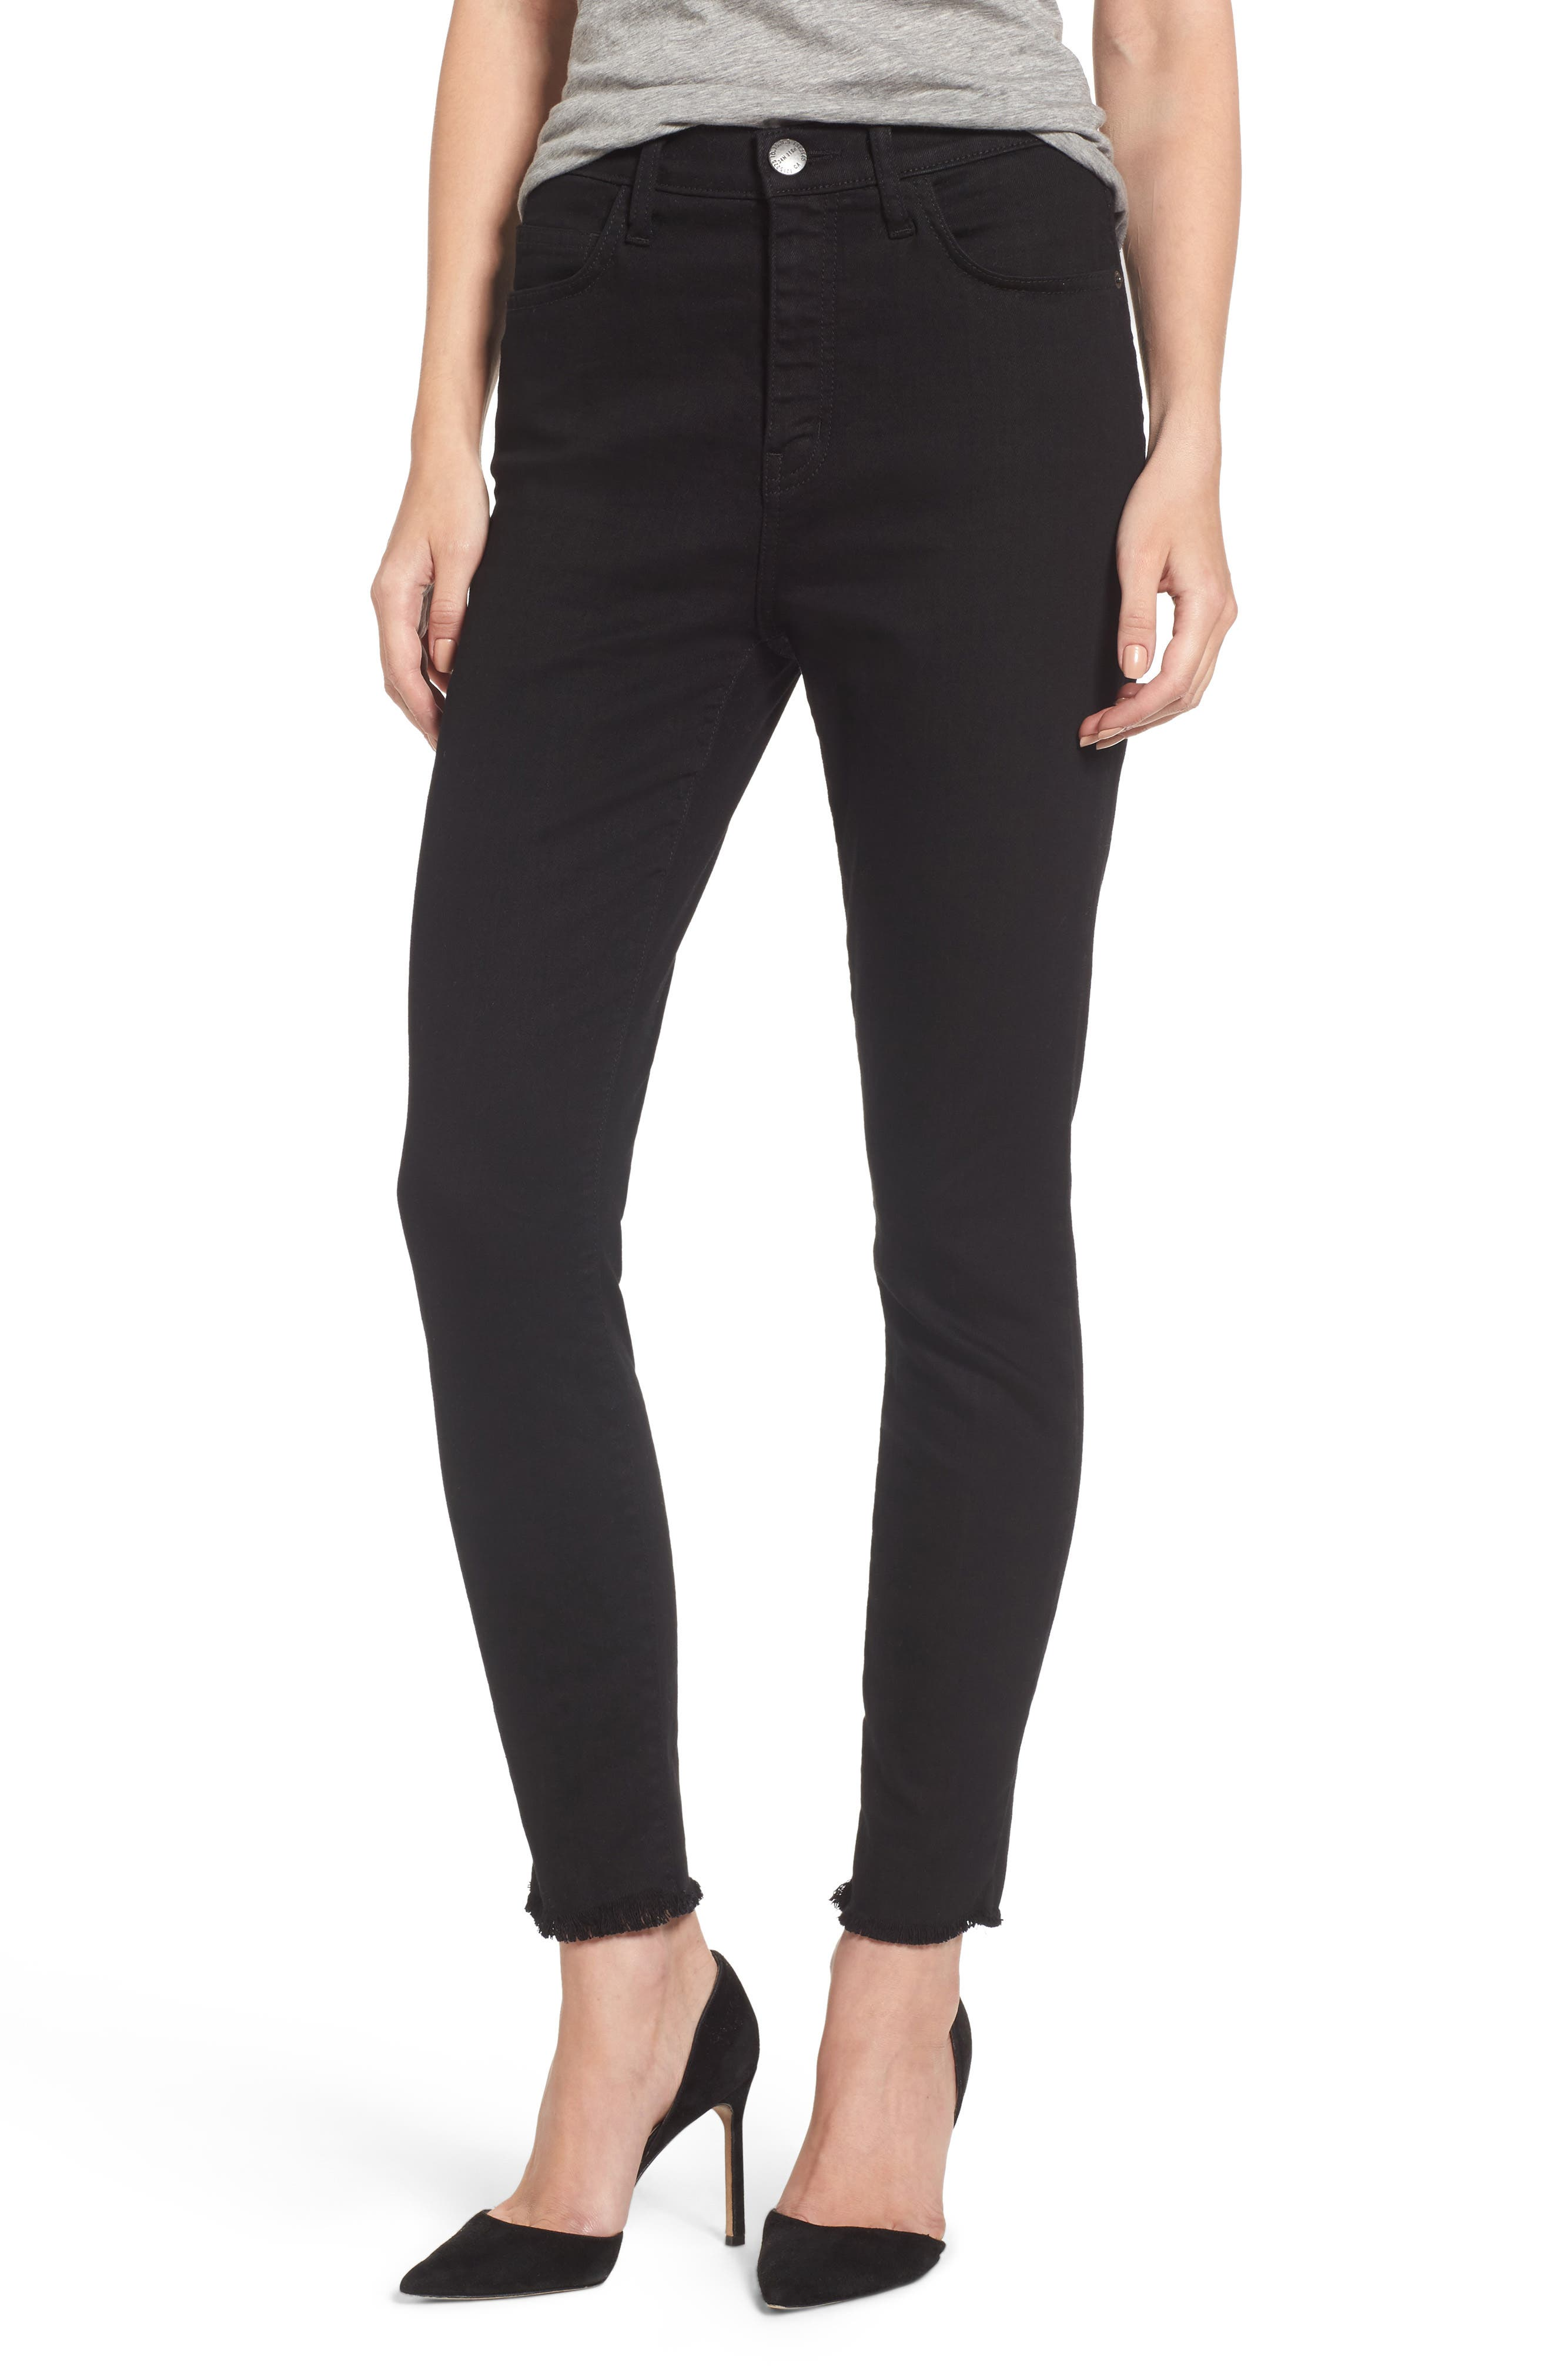 The Super High Waist Stiletto Ankle Skinny Jeans,                         Main,                         color, 005